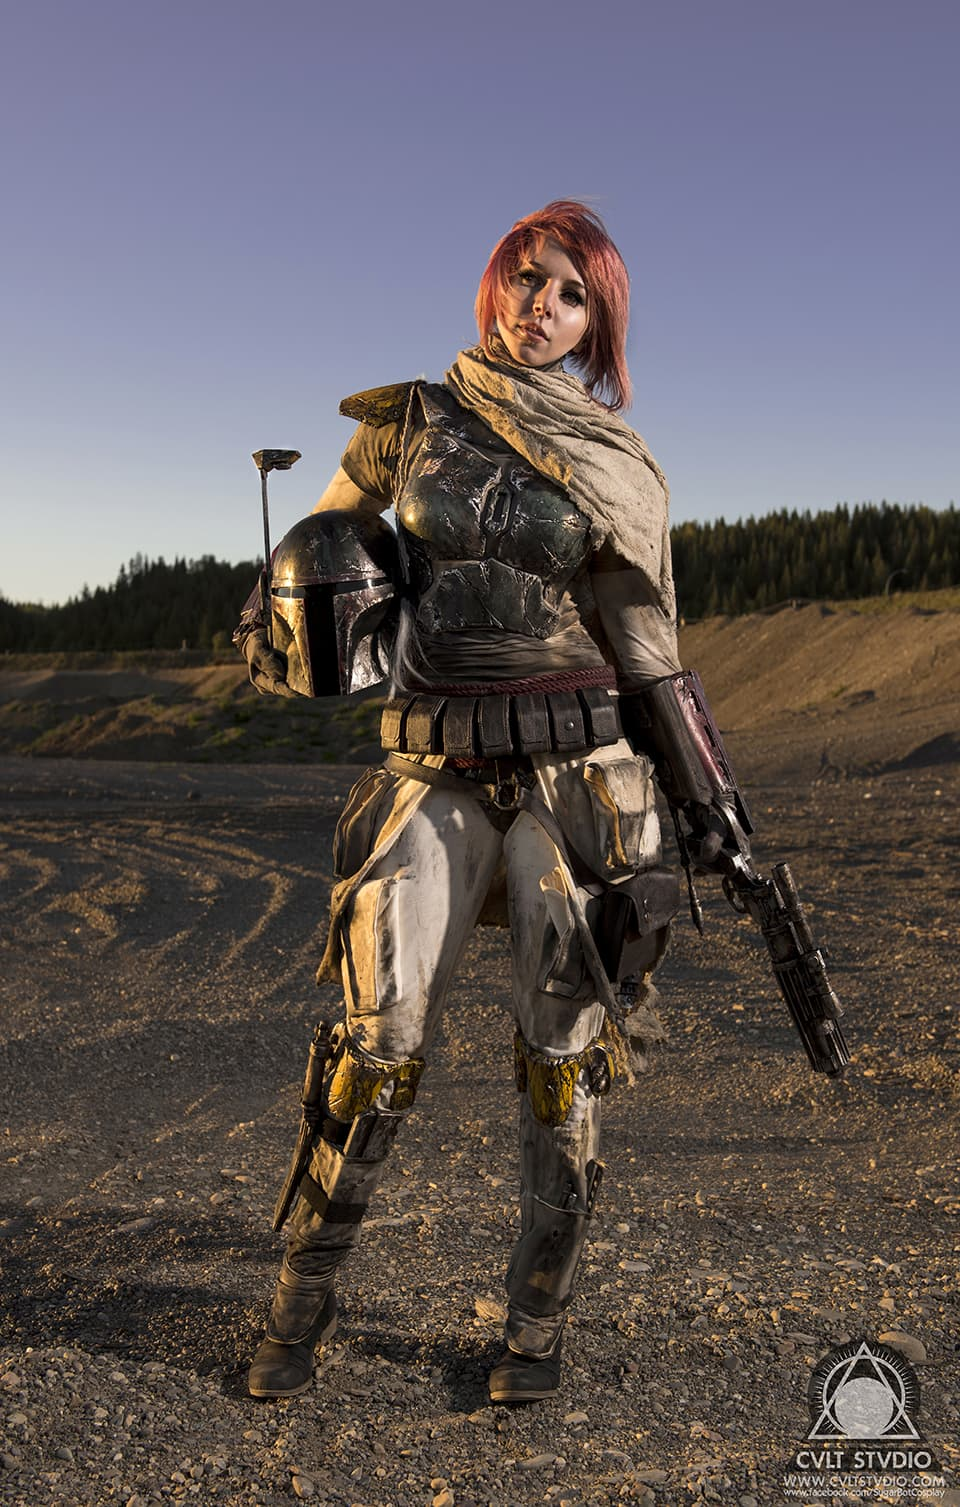 SugarBot Cosplay as Mythos Boba Fett